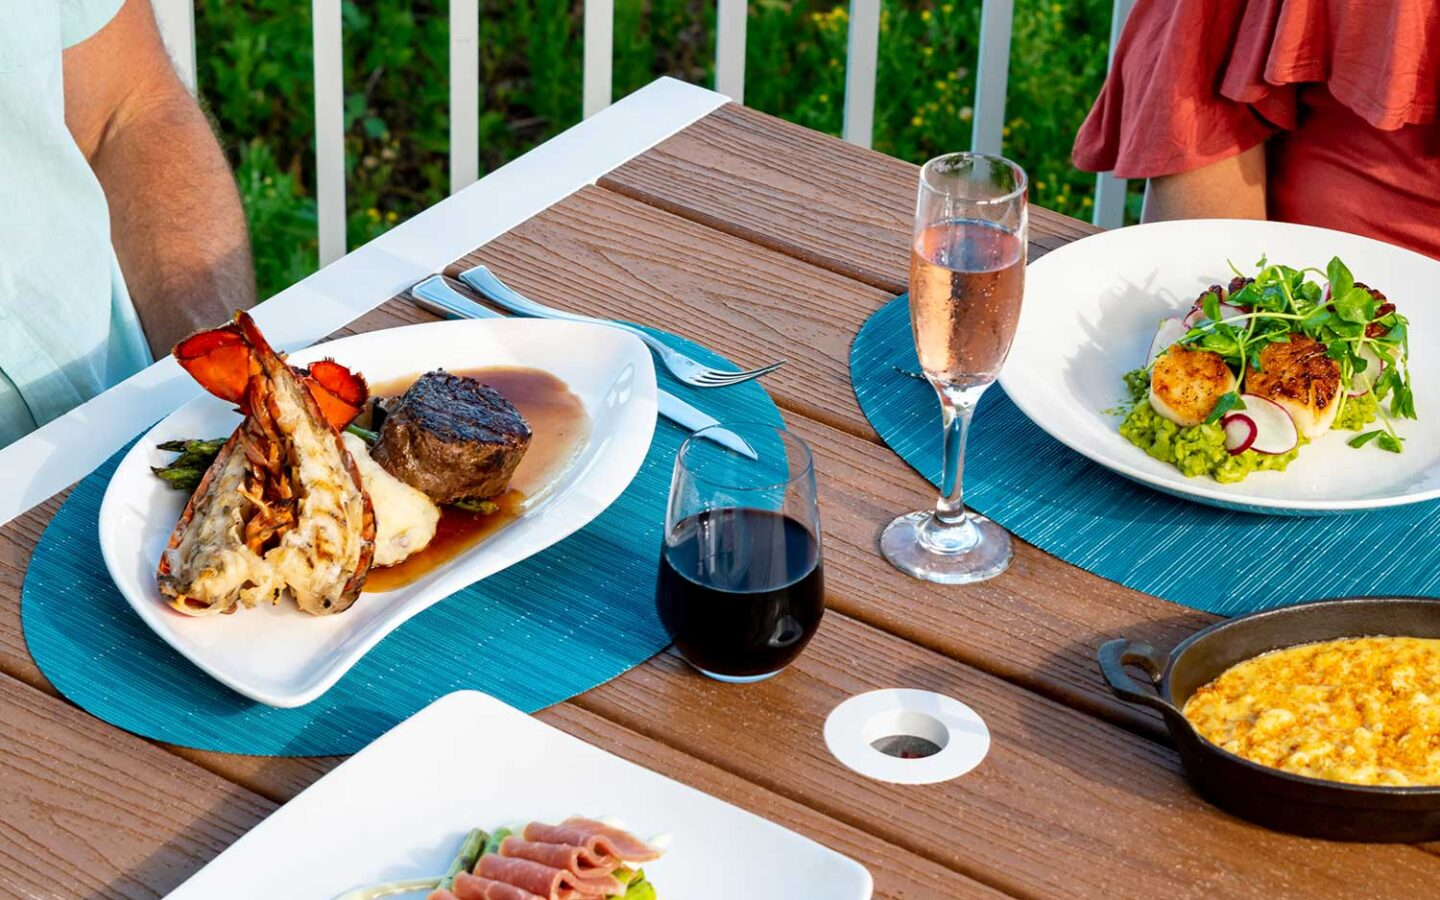 Glass of champagne, red wine, lobster dish and salad